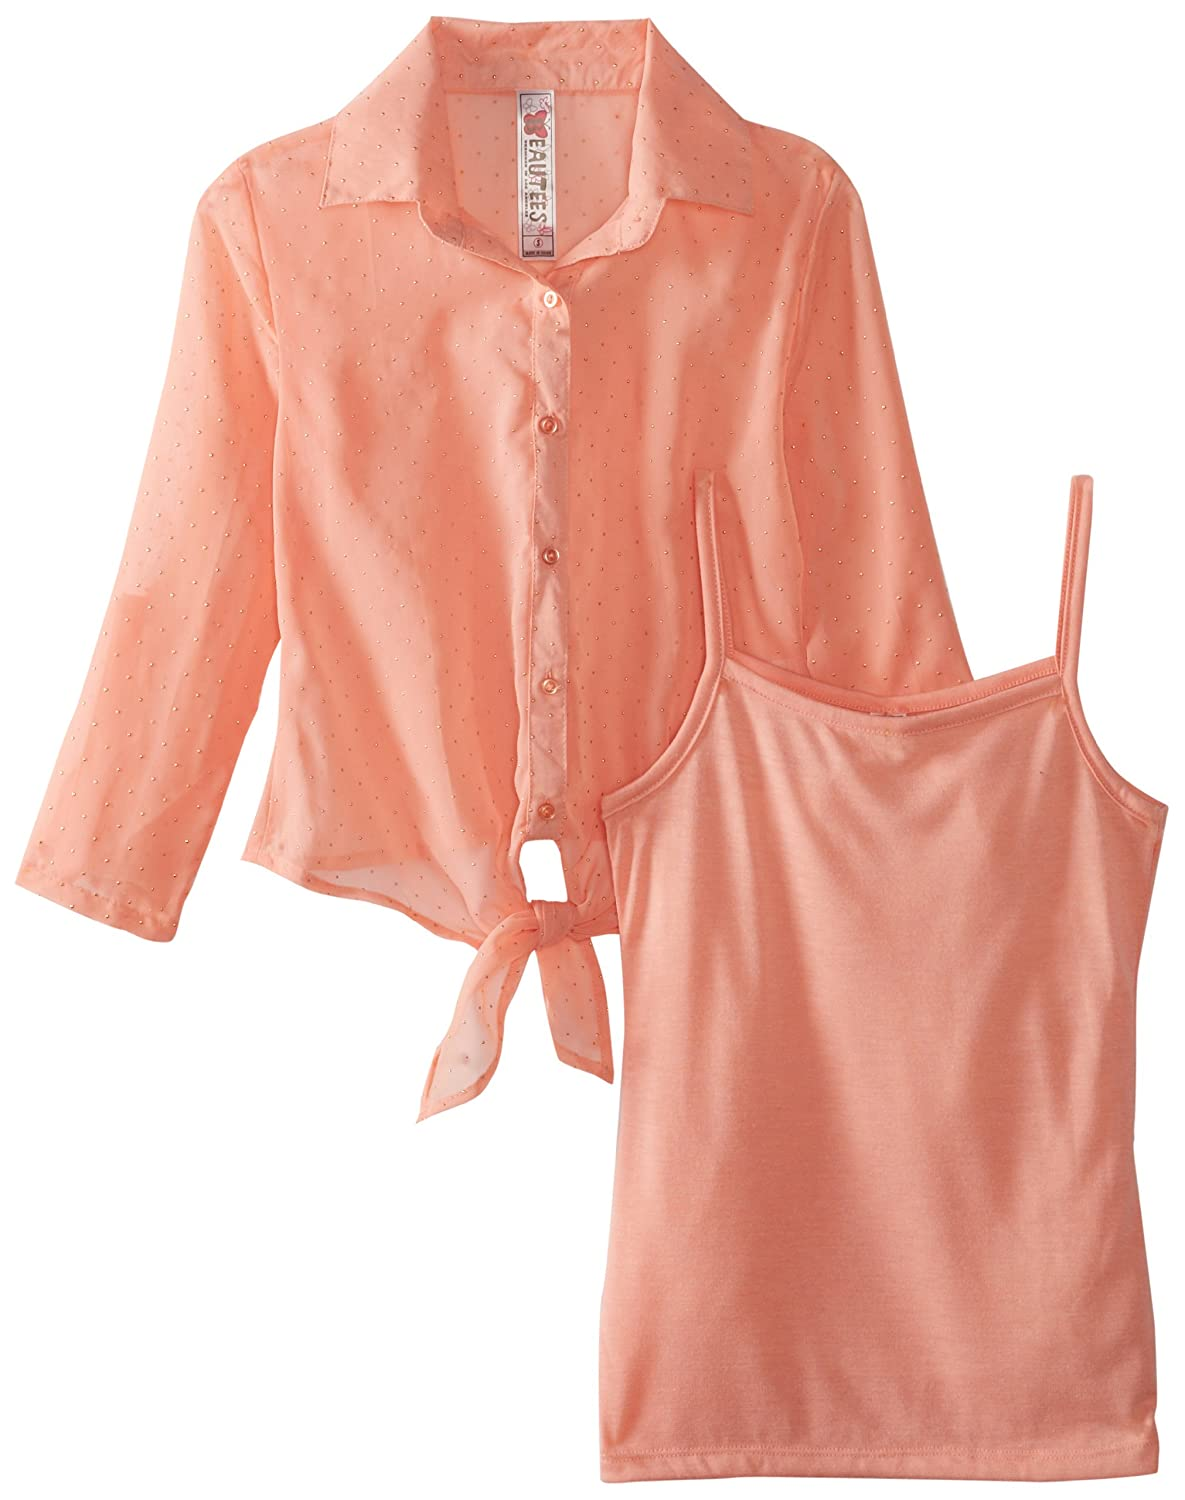 Beautees Big Girls Woven Tie Front Top with Tank